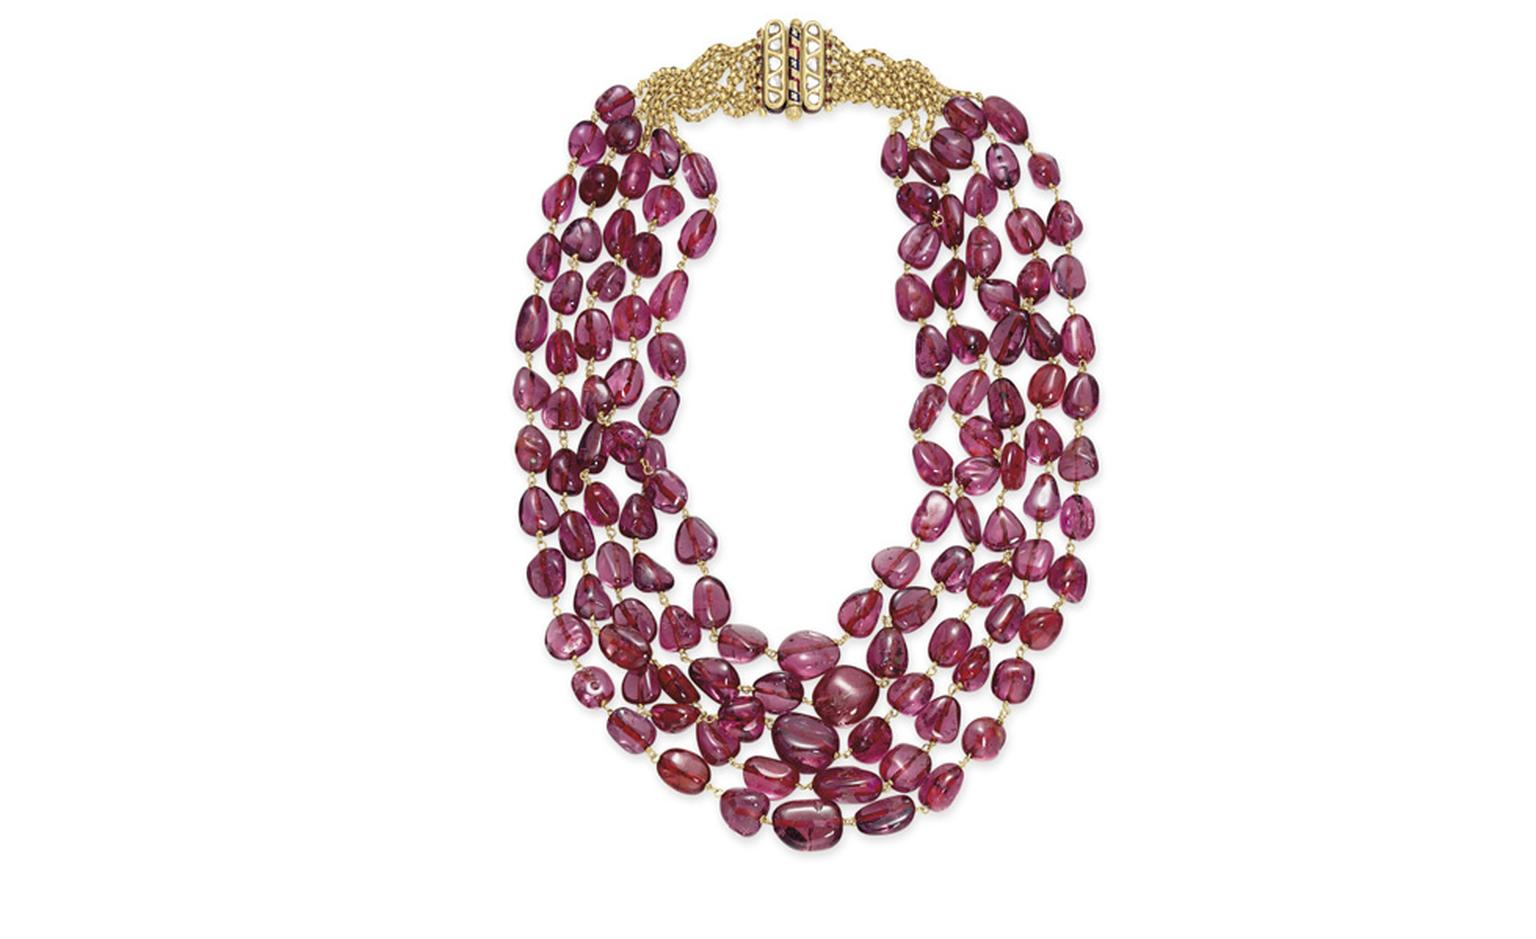 LOT 133 AN ANTIQUE SPINEL, DIAMOND AND ENAMEL NECKLACE   North Indian, circa 1900, 18 ins. Estimate $100,000-$150,000